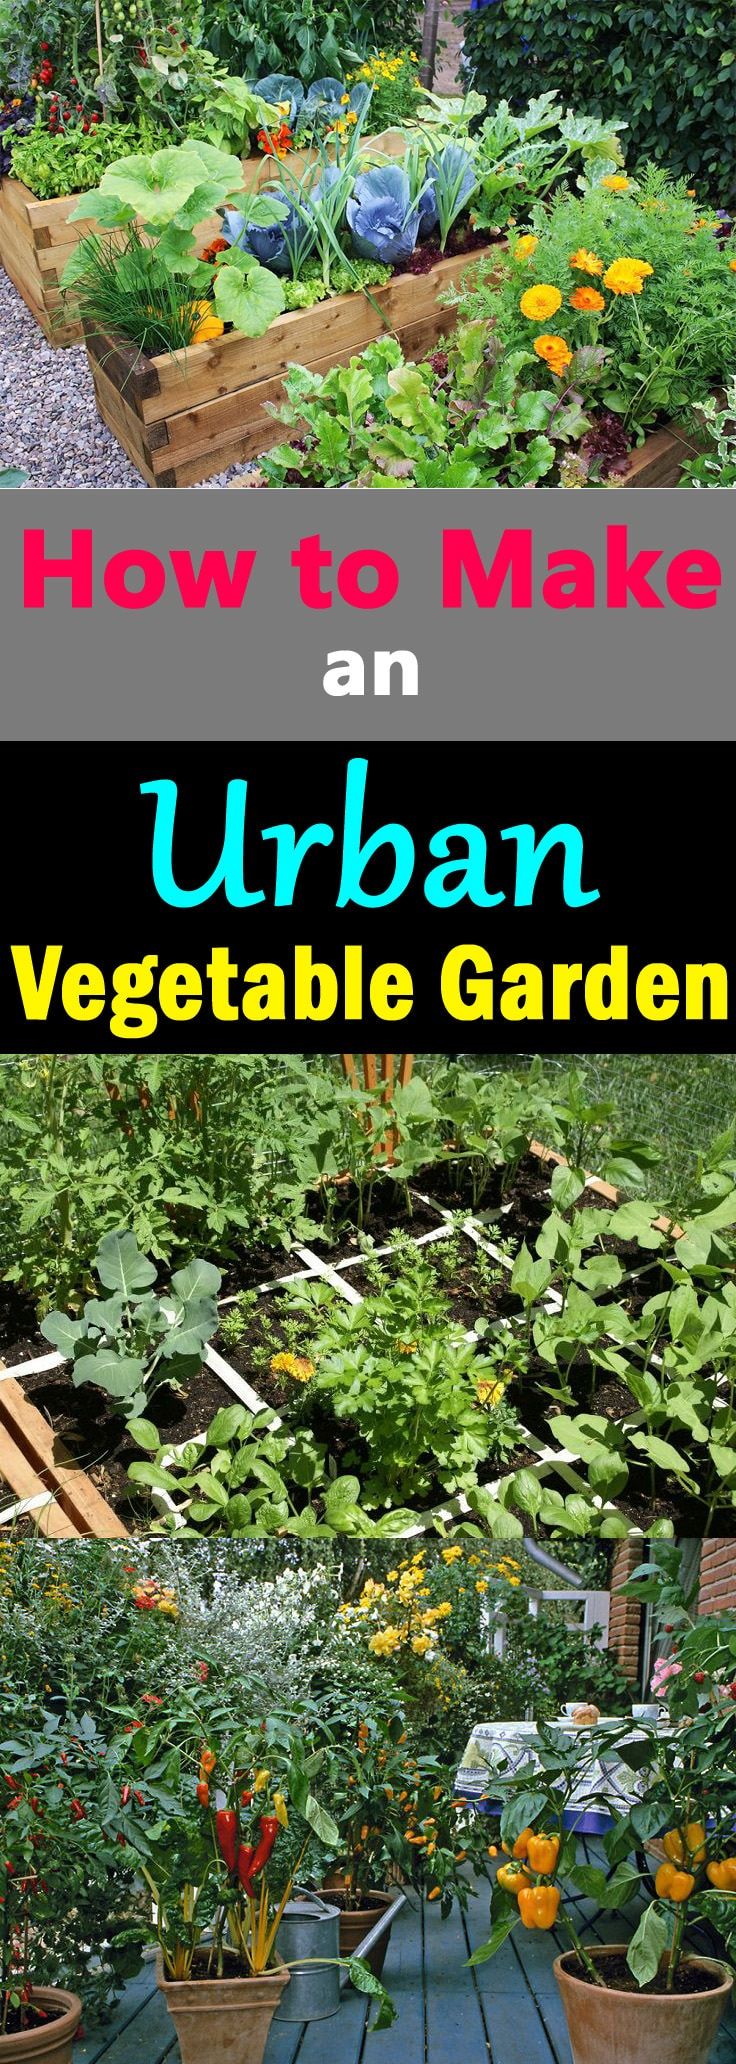 want to know how to make an urban vegetable garden this article will help you